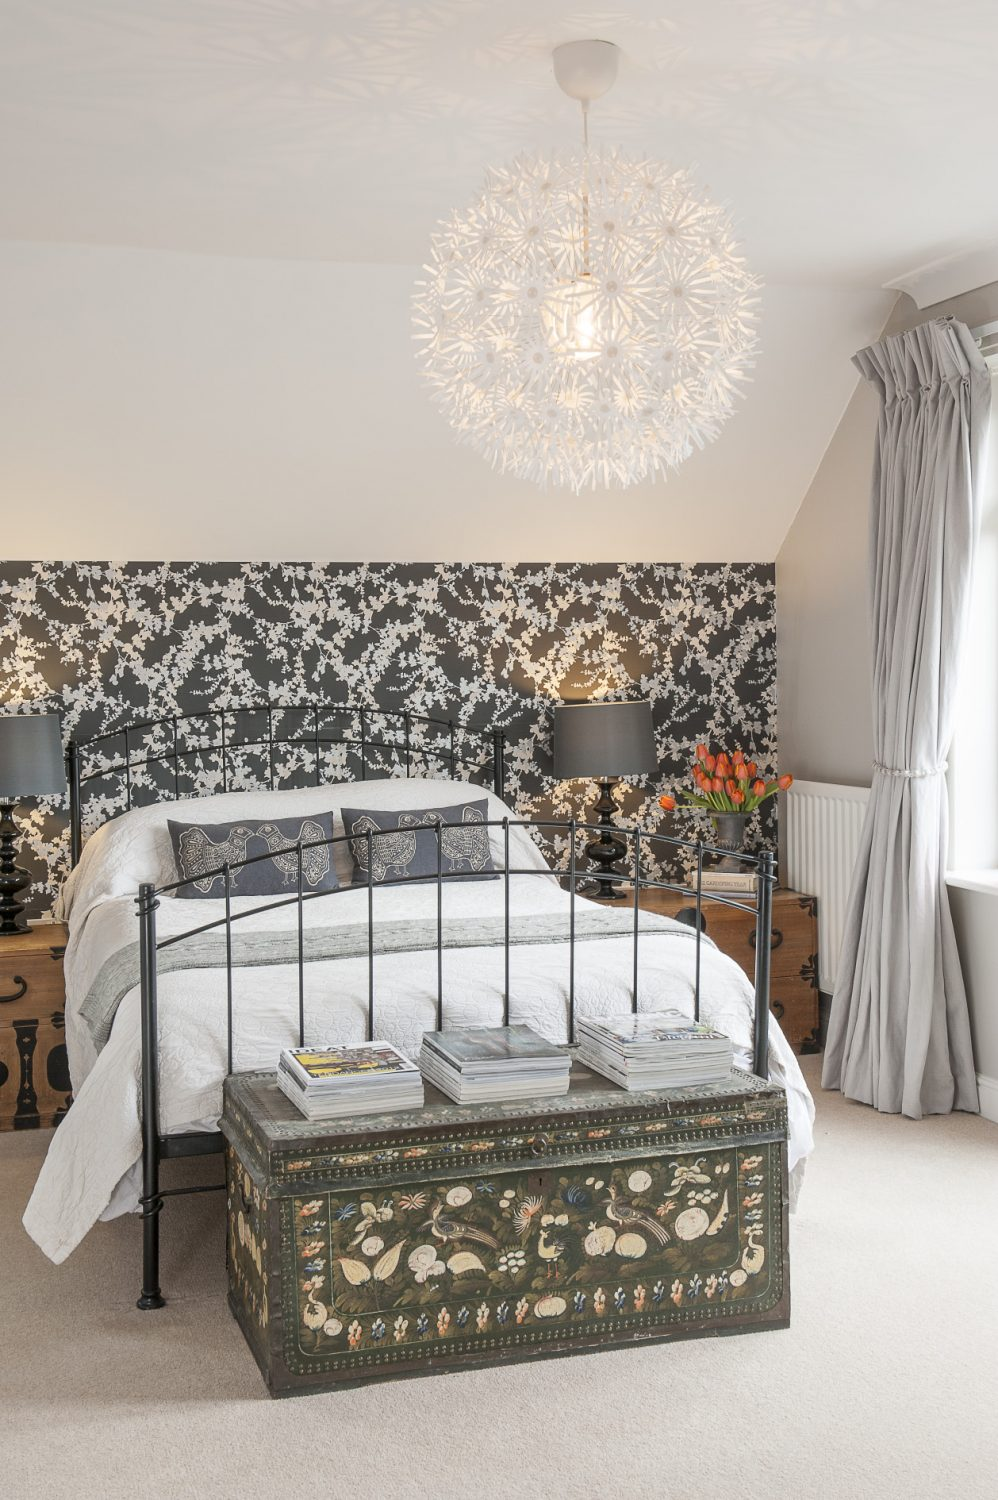 The immaculate guest room and its en suite have been created using products found on the high street – the wallpaper is 'Hawthorn' by Laura Ashley. At the end of the bed is an exquisite painted leather chest that belonged to Phoebe's grandmother